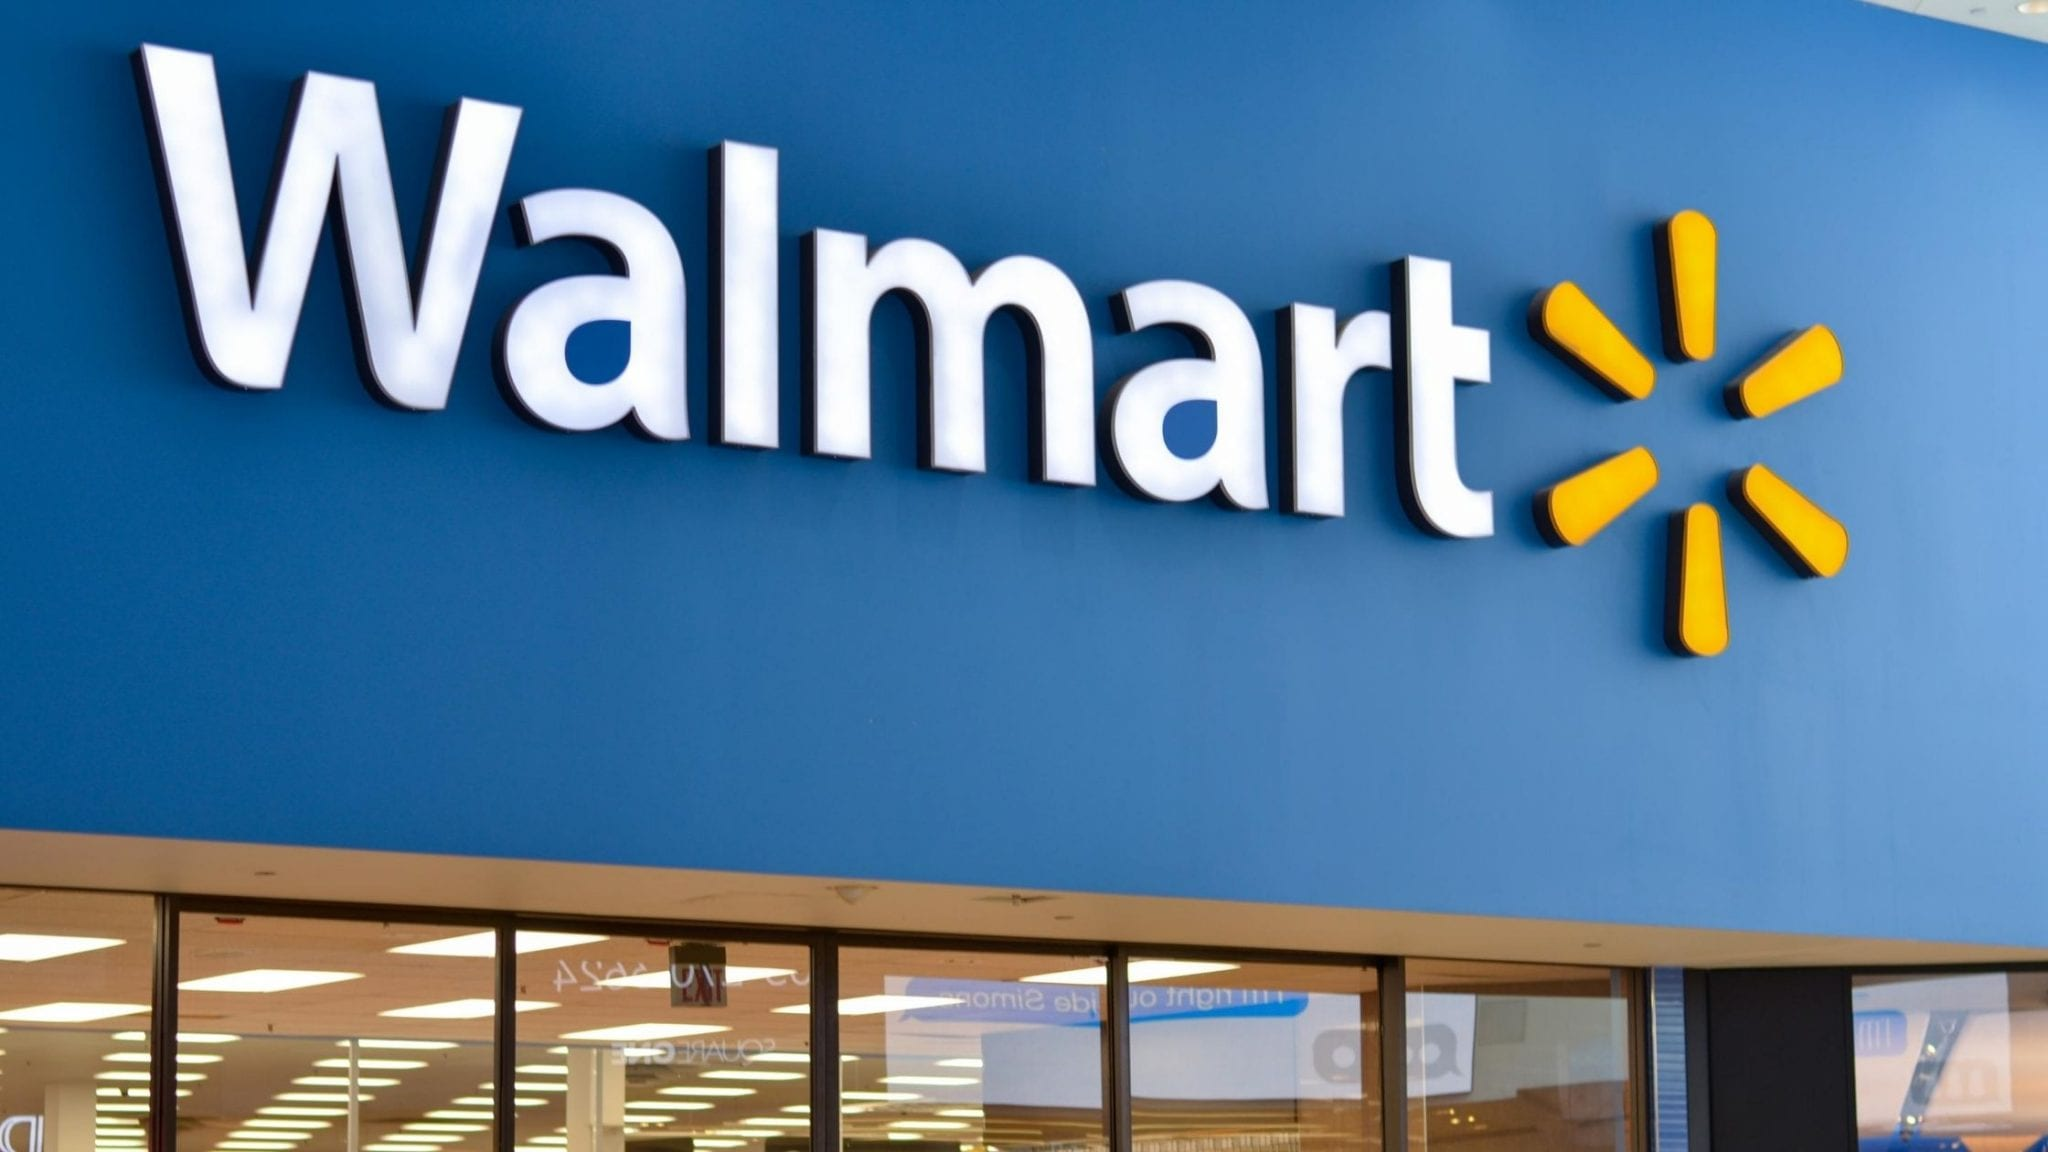 Walmart WMT Q3 2021 Earnings Call Transcript